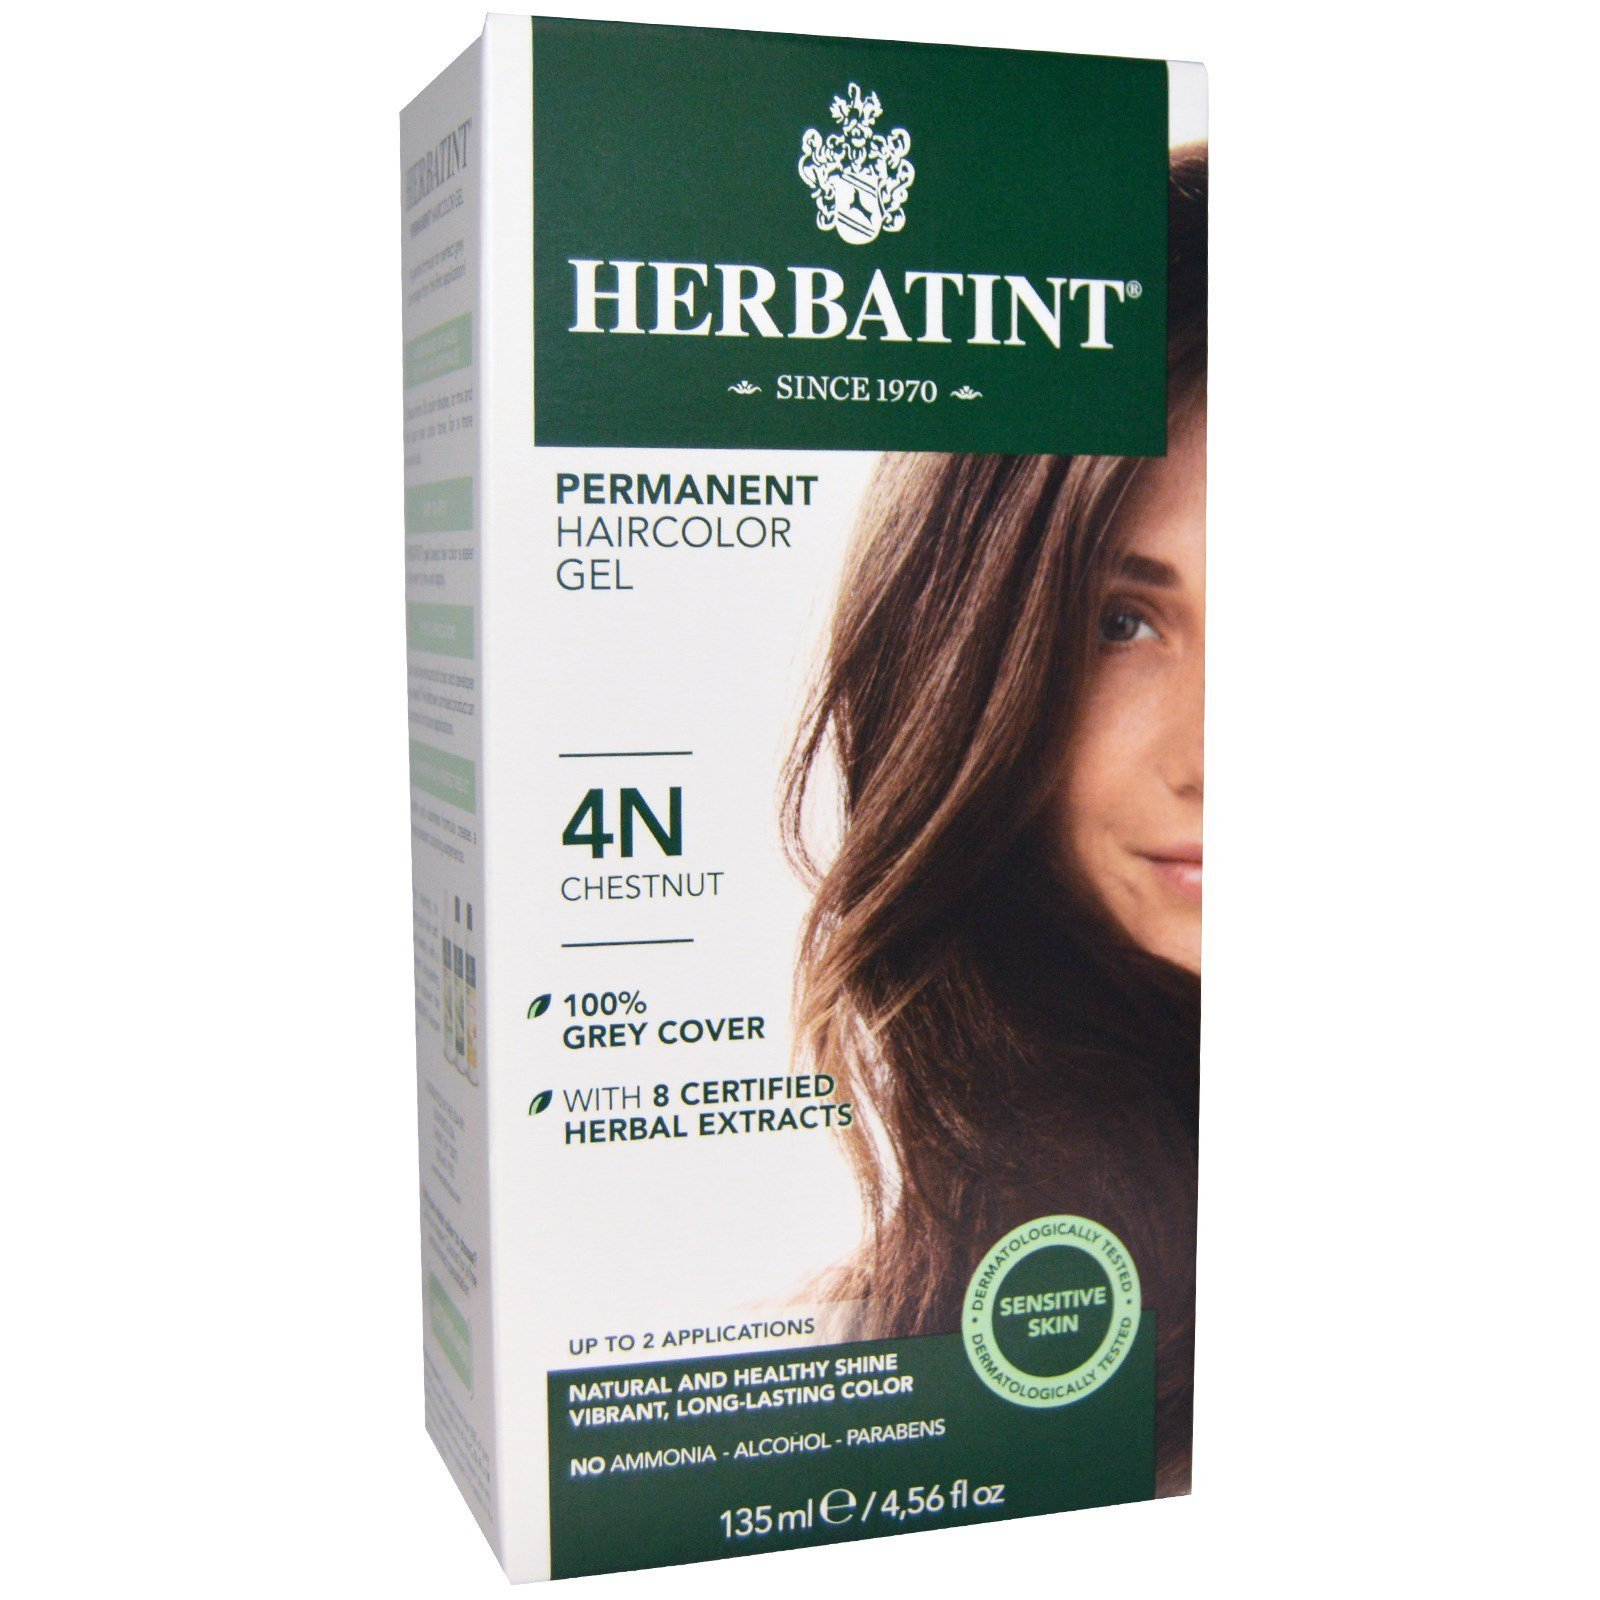 New Herbatint Permanent Haircolor Gel 4N Chestnut 4 56 Fl Ideas With Pictures